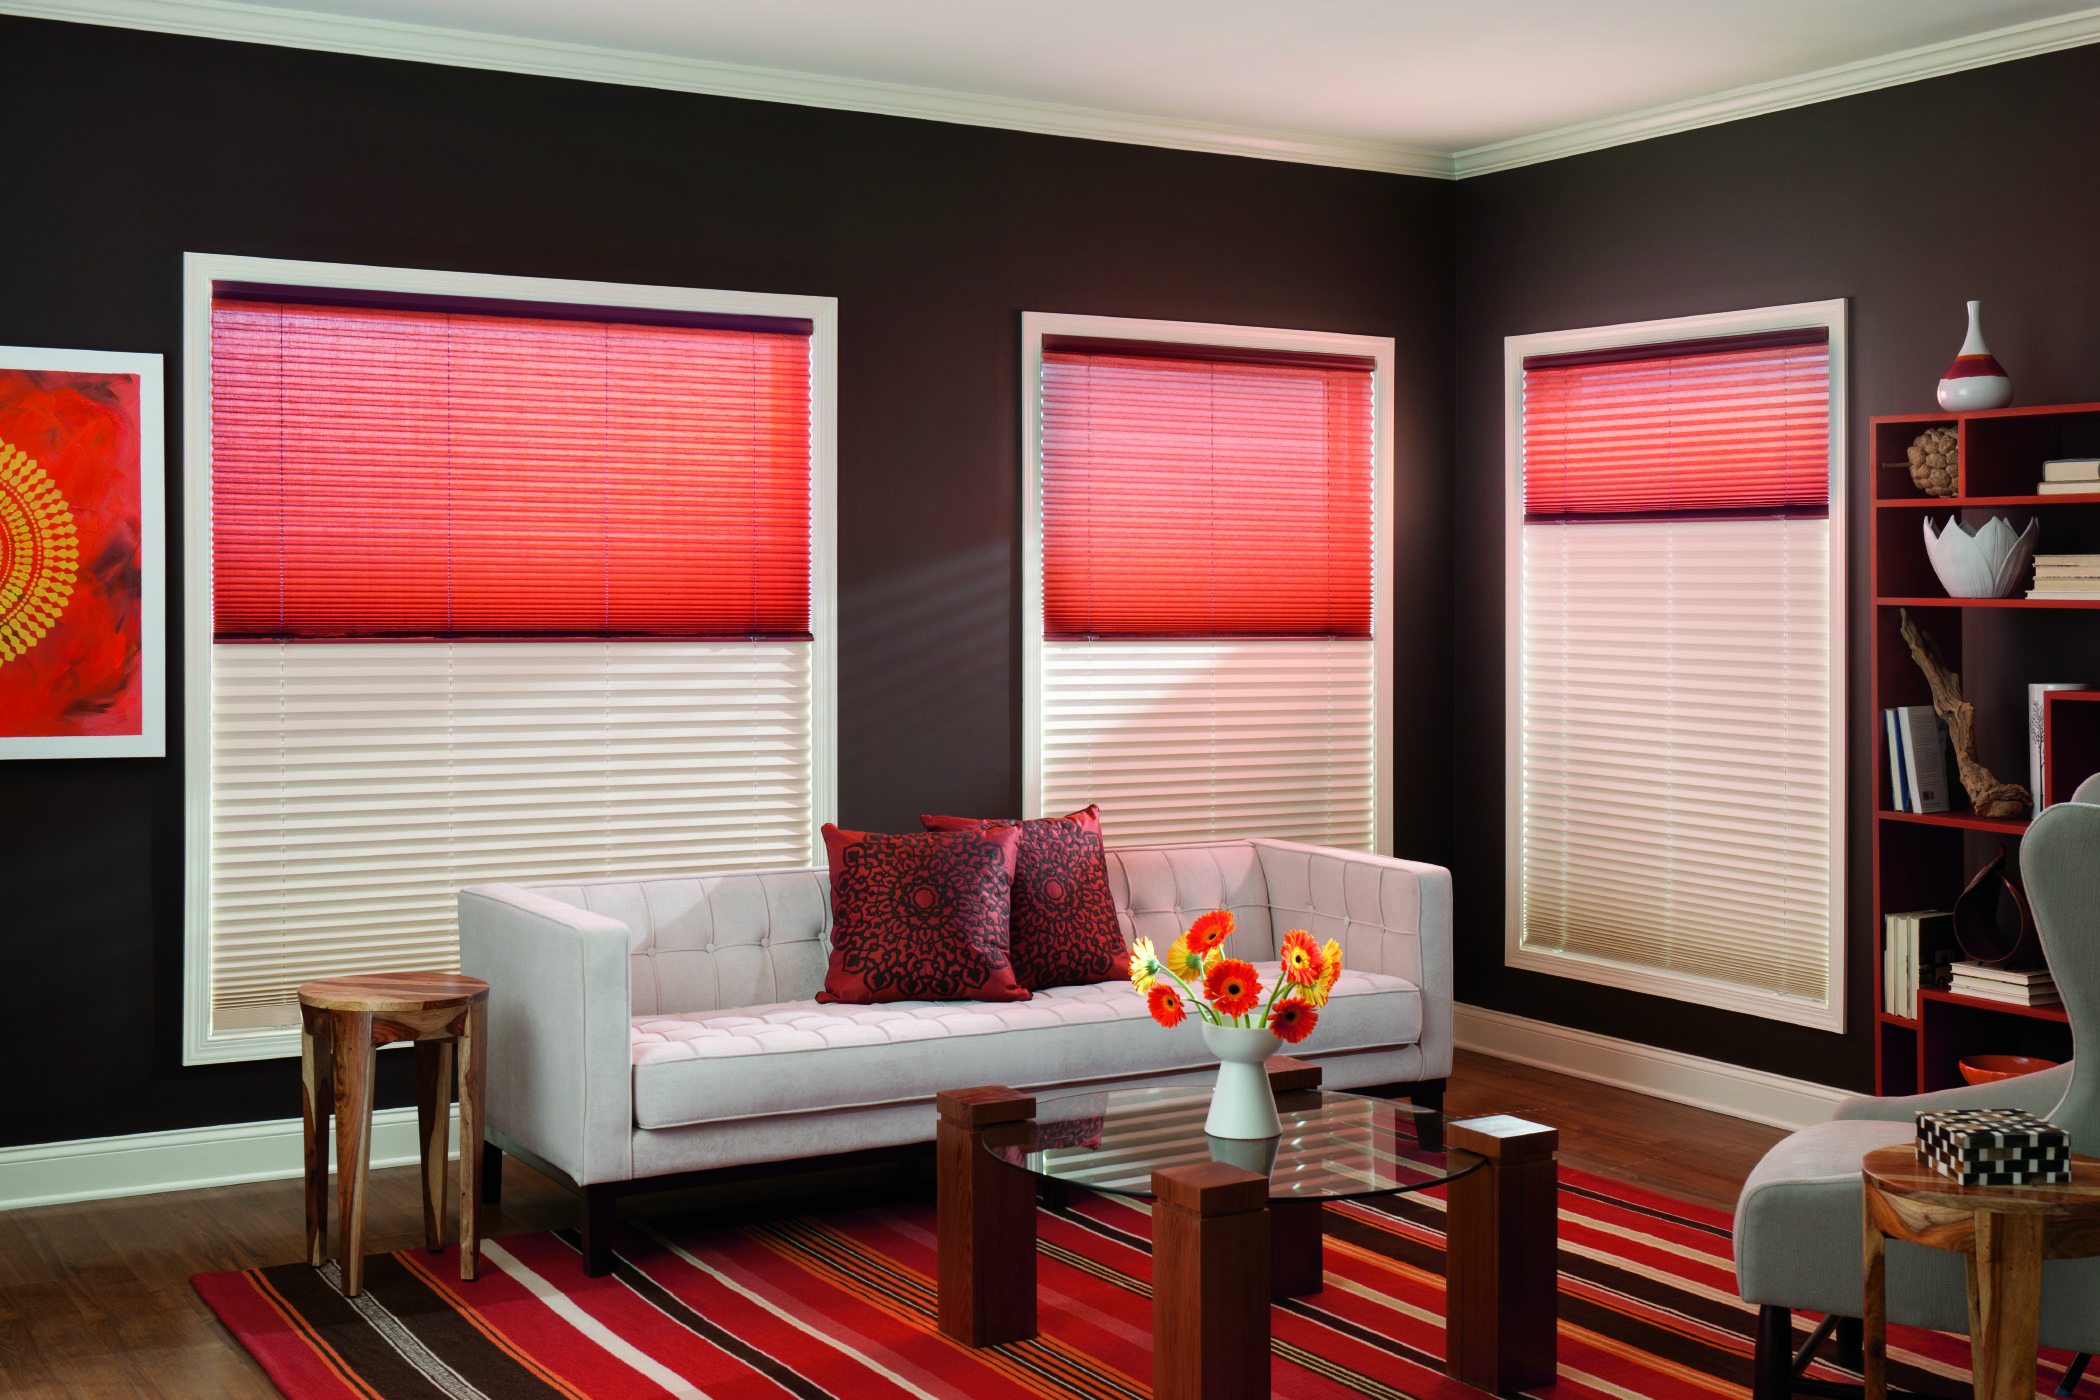 When It Comes To Getting The Best Possible Service For The Window Shades In  Your Raleigh Home Or Business, You Need A True Professional To Partner With.